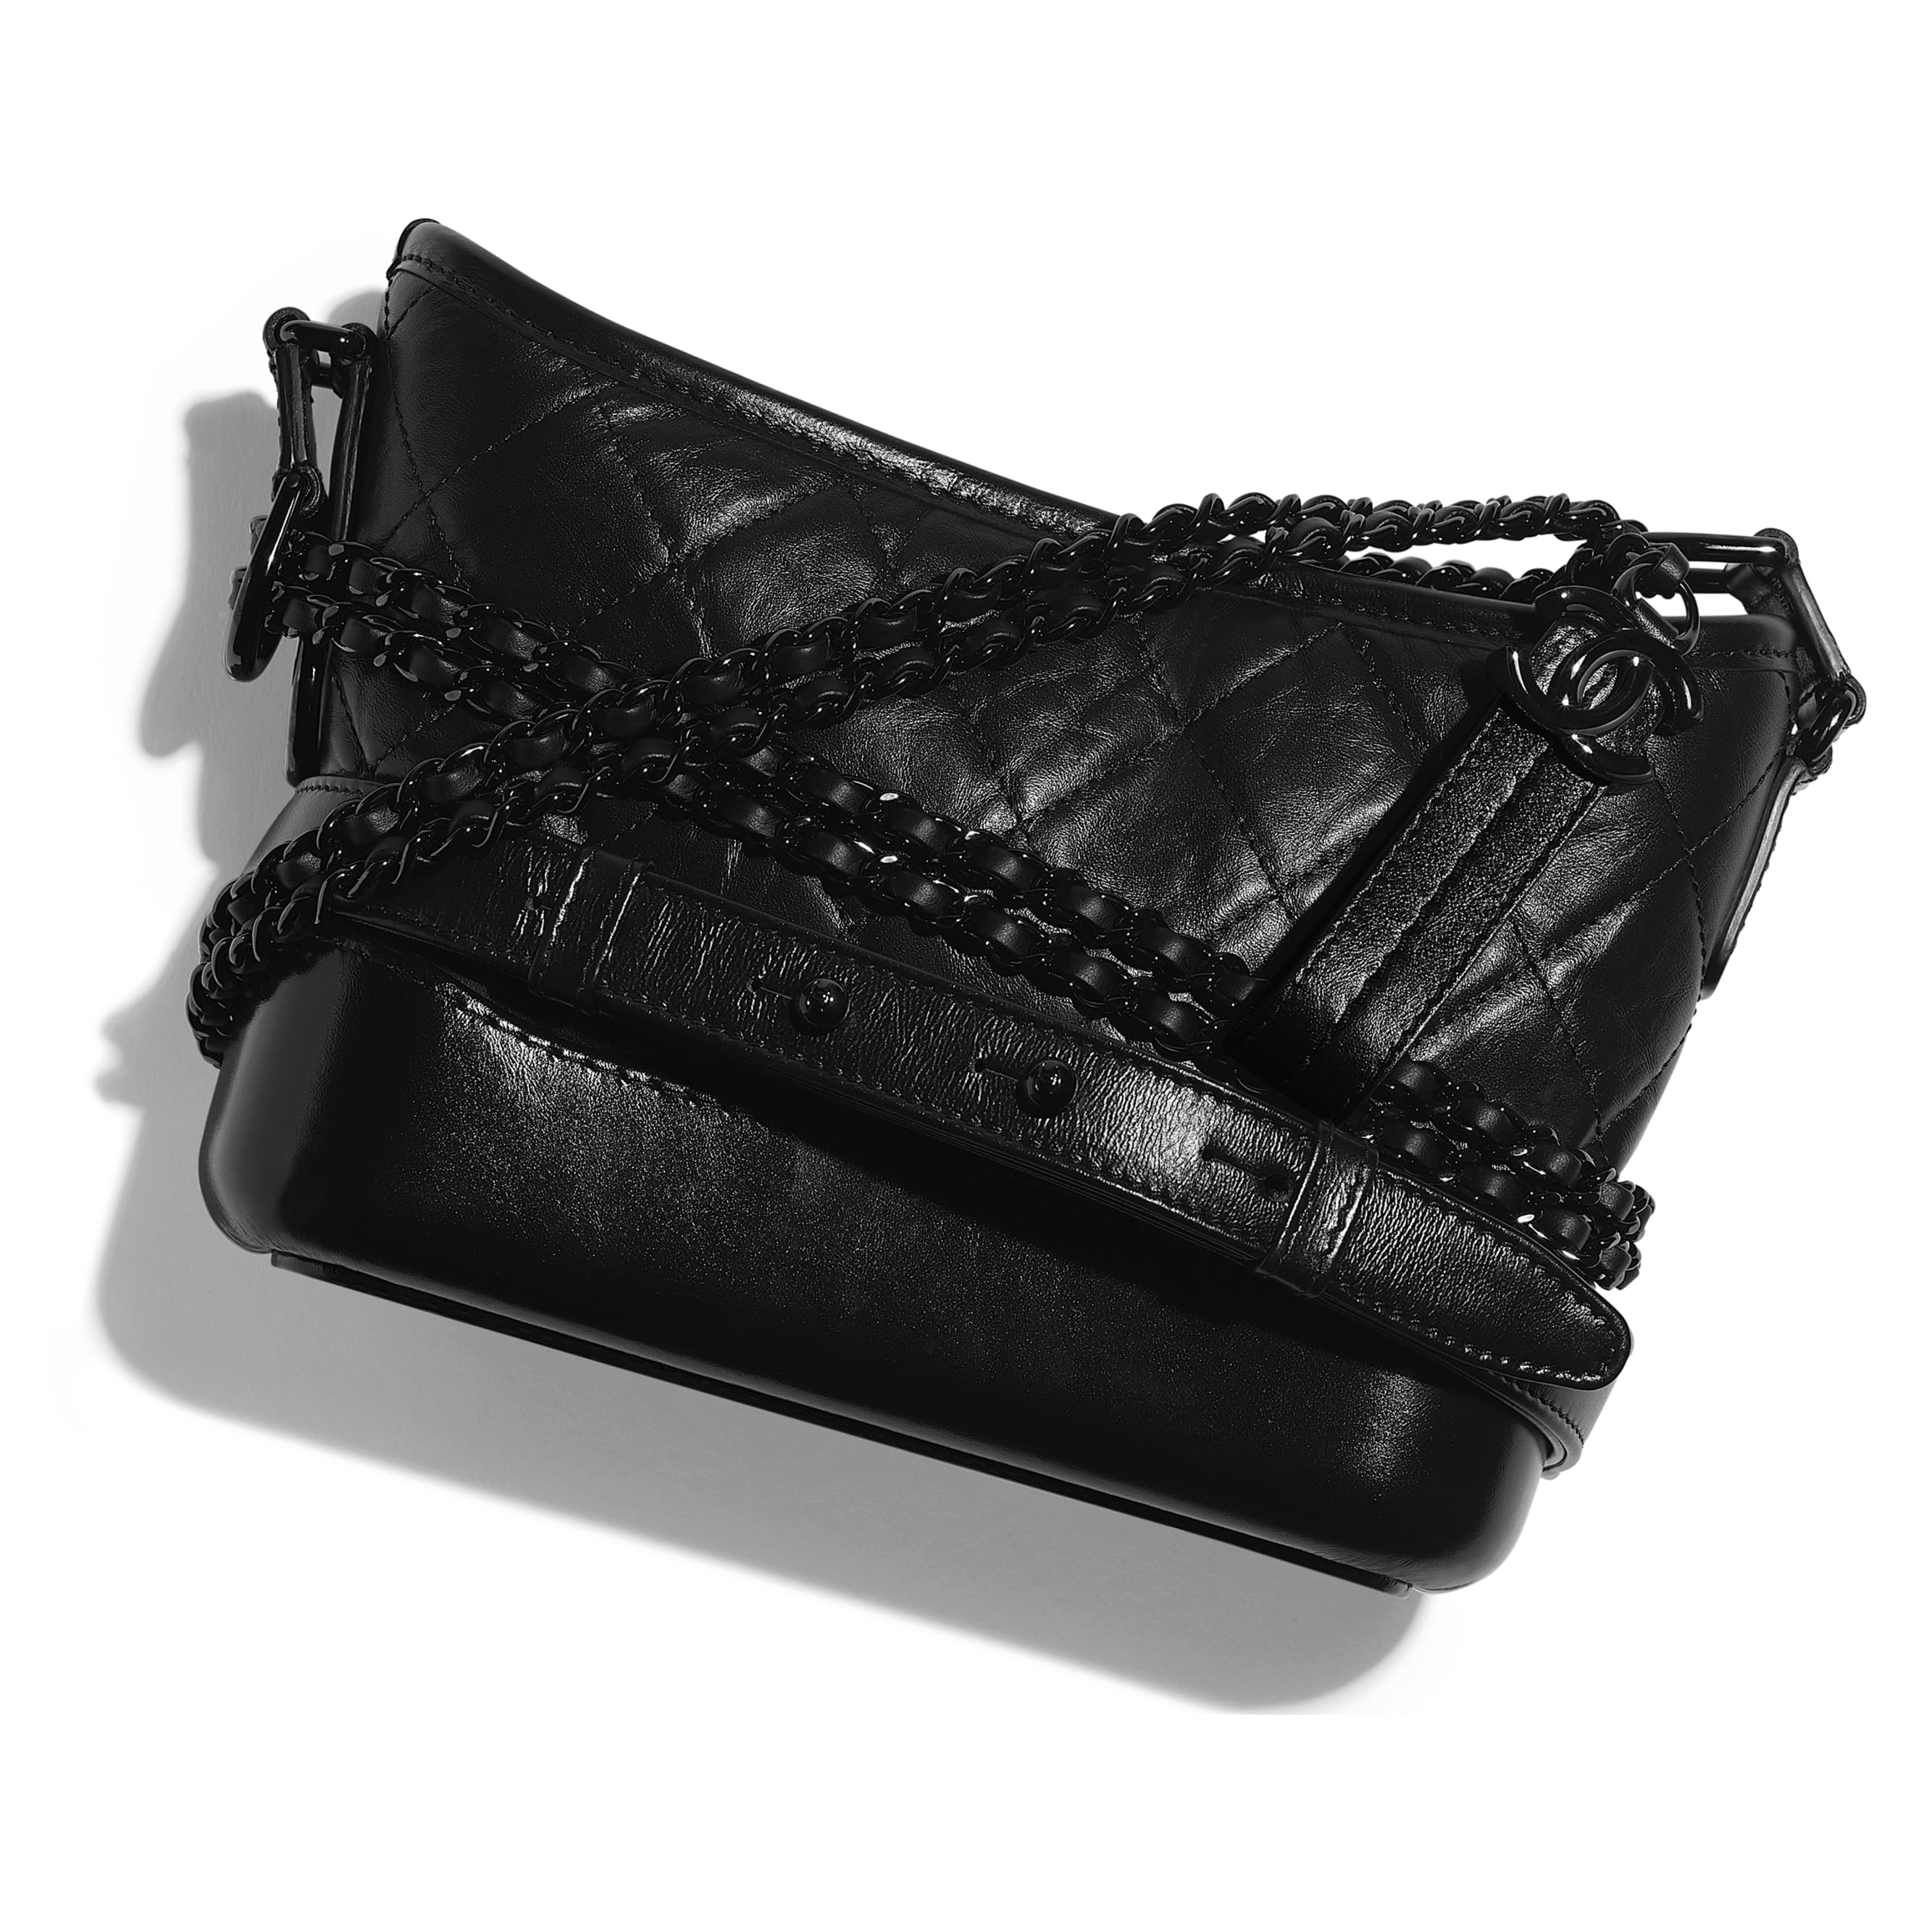 CHANEL'S GABRIELLE Small Hobo Bag - Black - Aged Calfskin, Smooth Calfskin & Black Metal - Extra view - see standard sized version